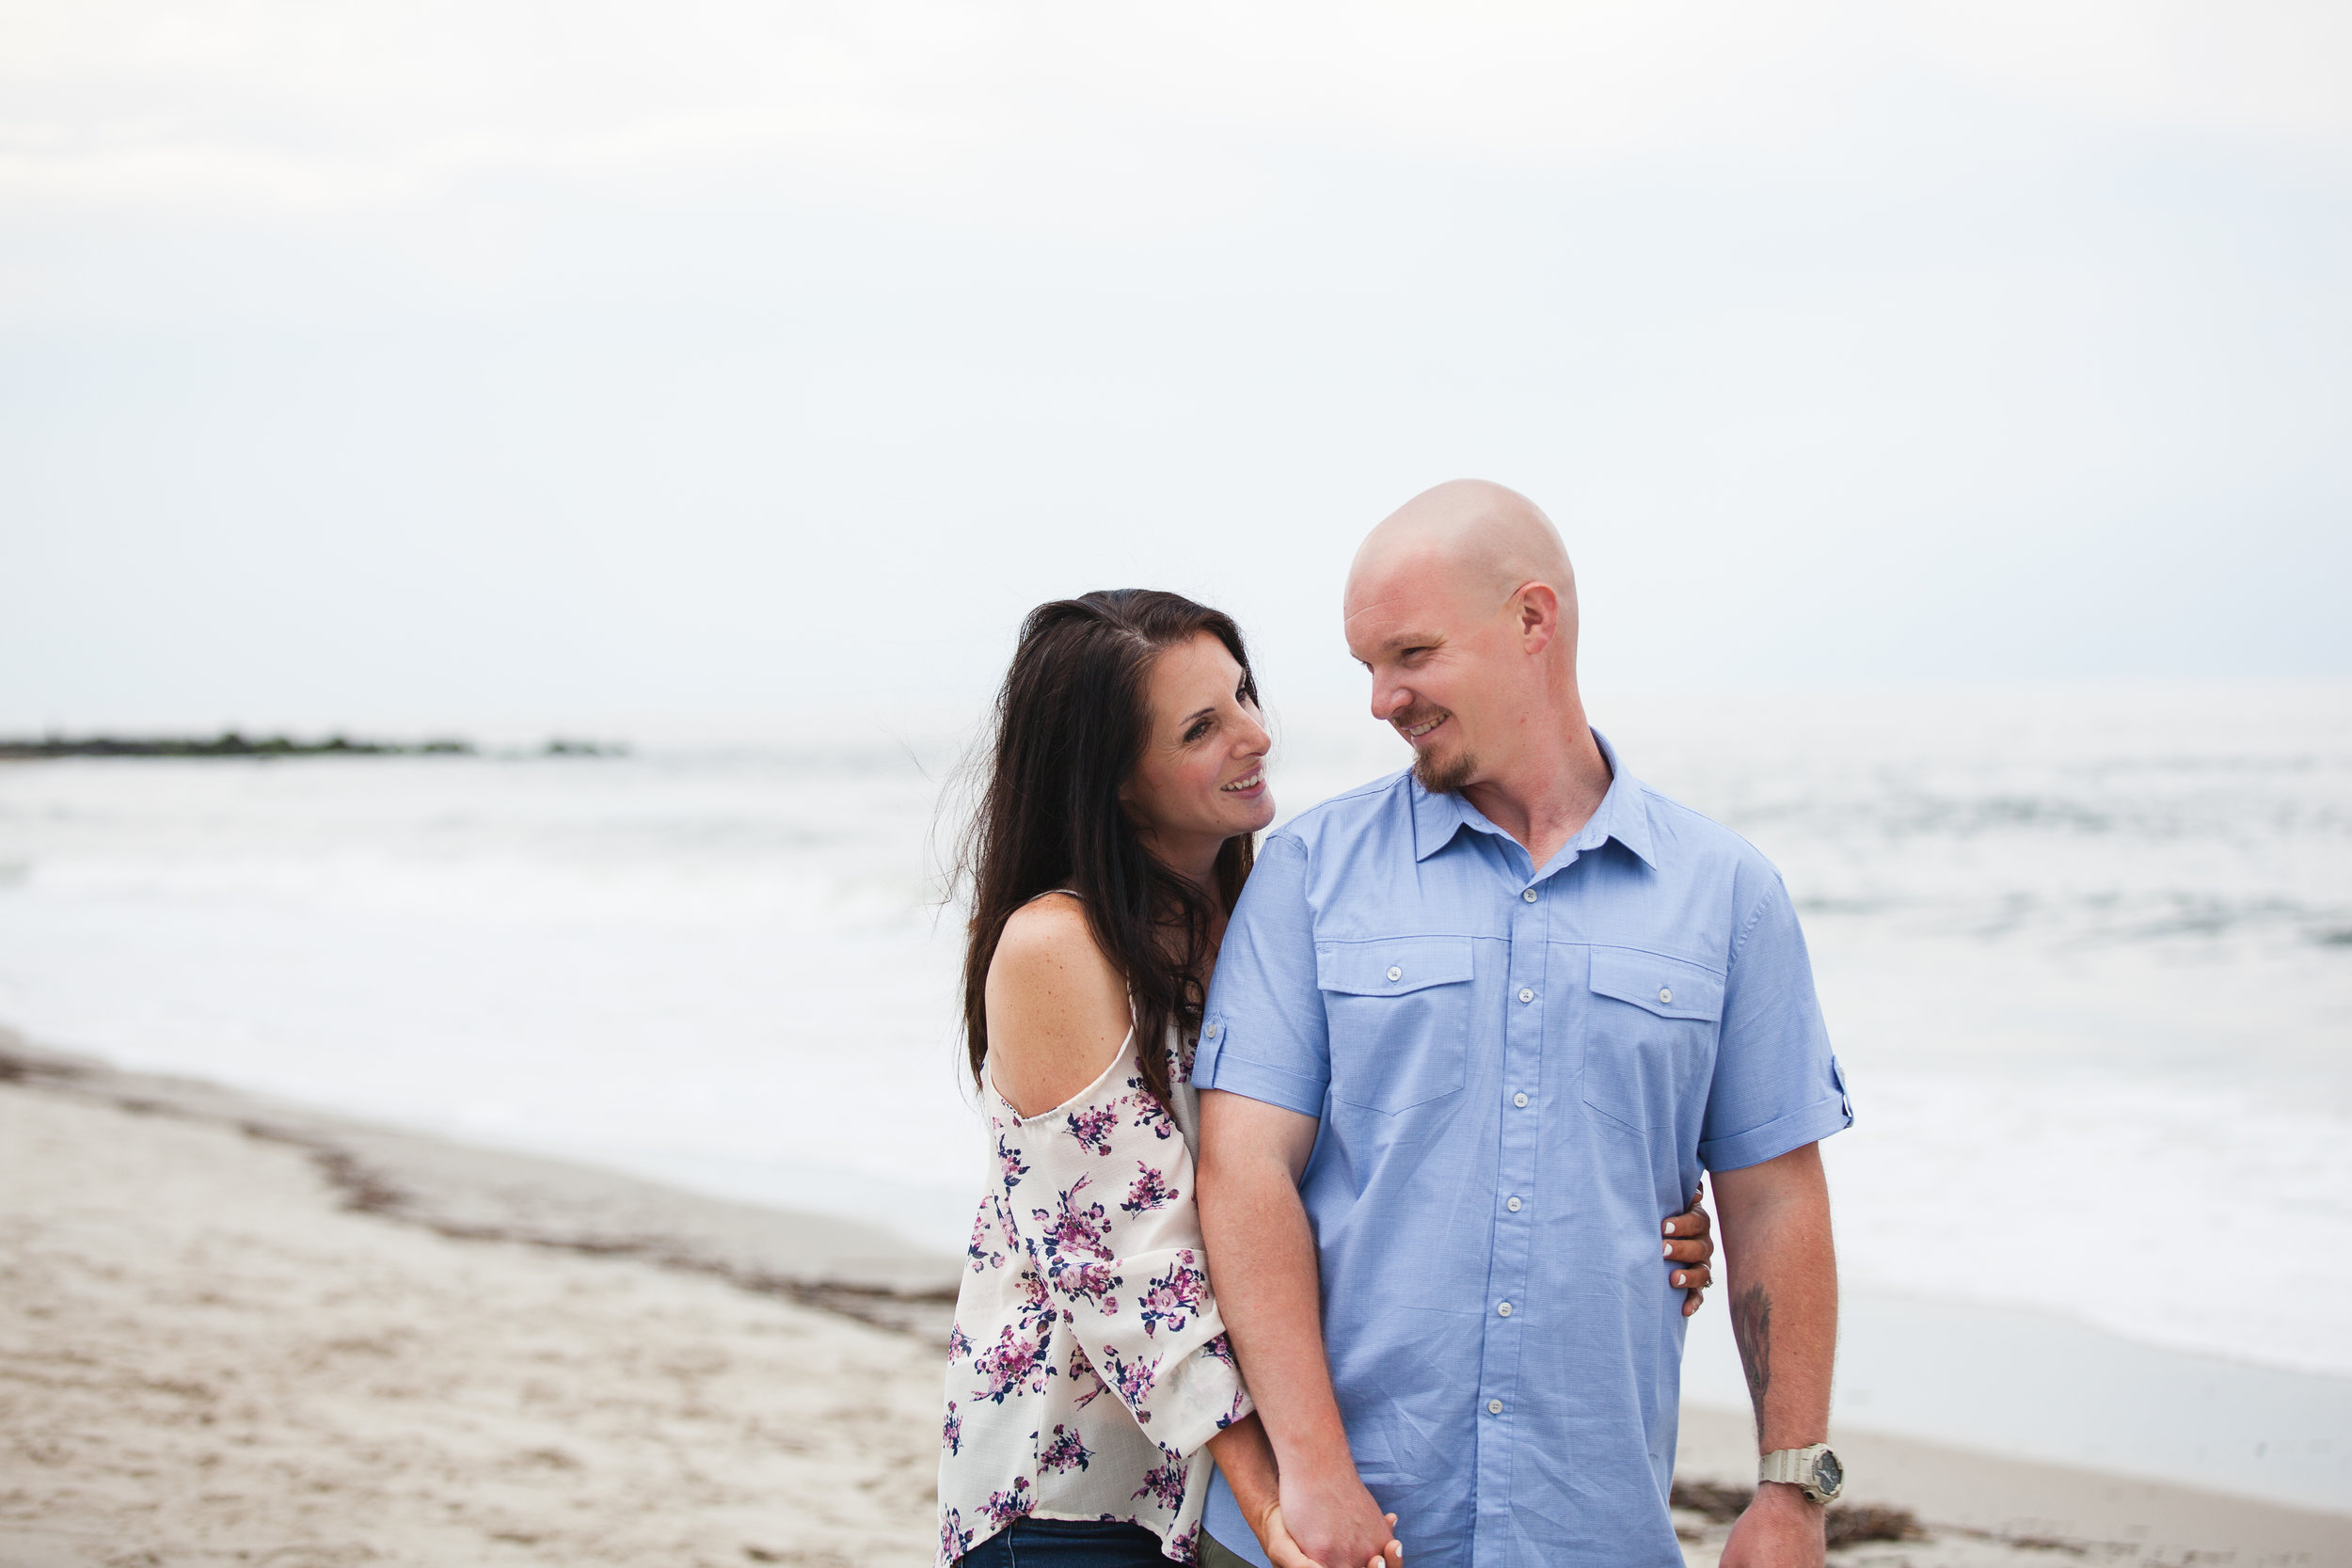 StaceyandJohnEngagementPrints-41.jpg